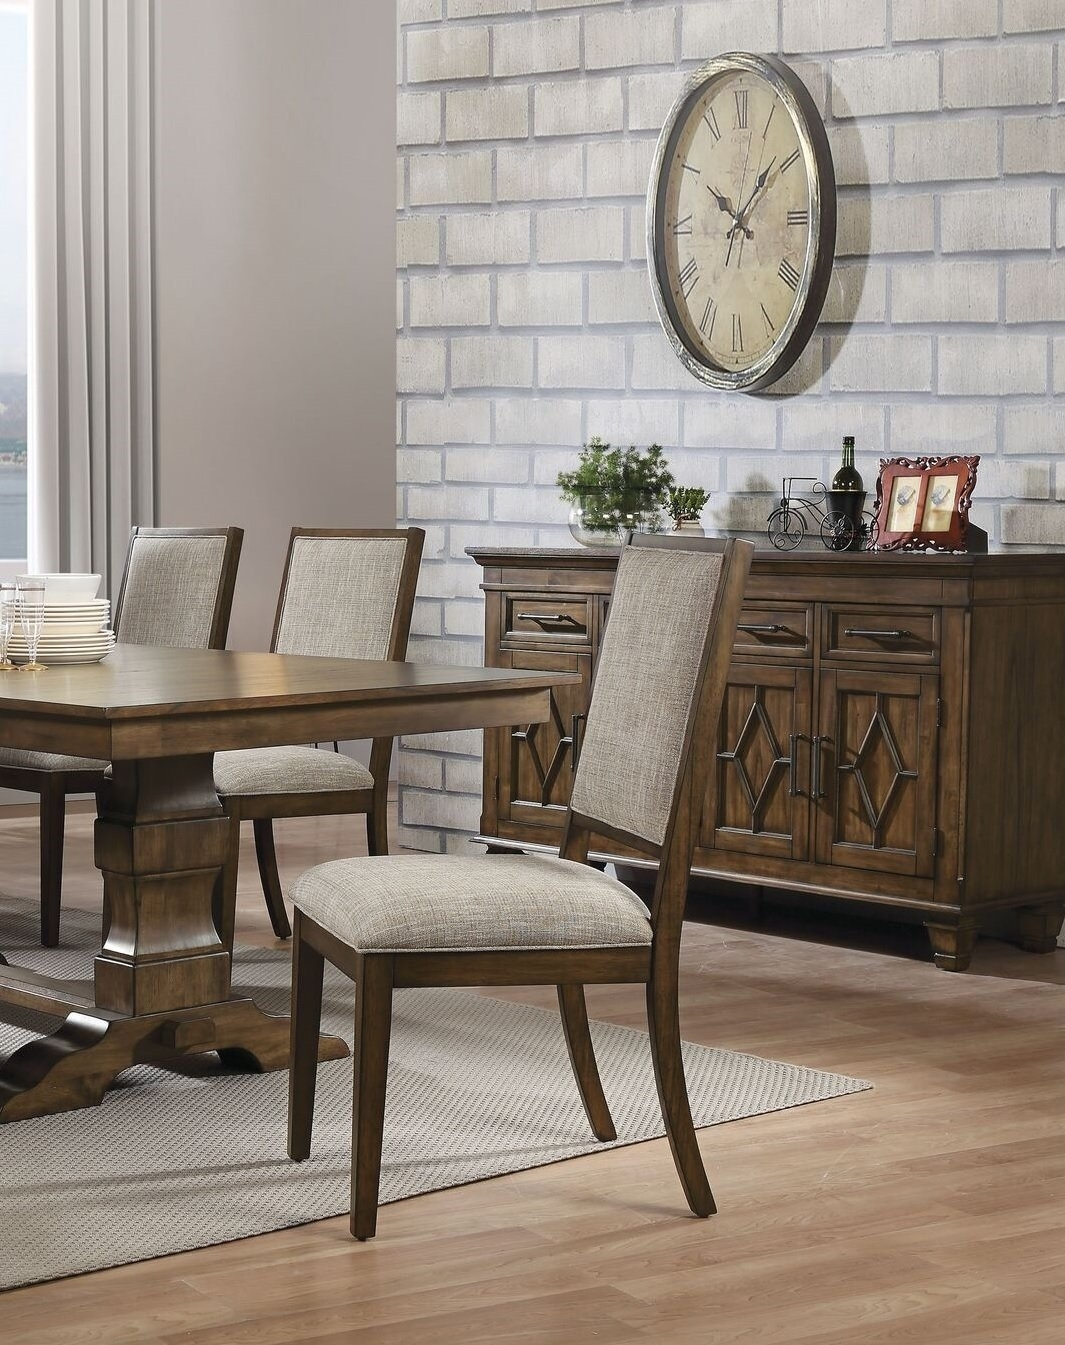 Caira Upholstered Diamond Back Side Chairs With Regard To Most Recently Released Gracie Oaks Calhoon Upholstered Dining Chair (#7 of 20)